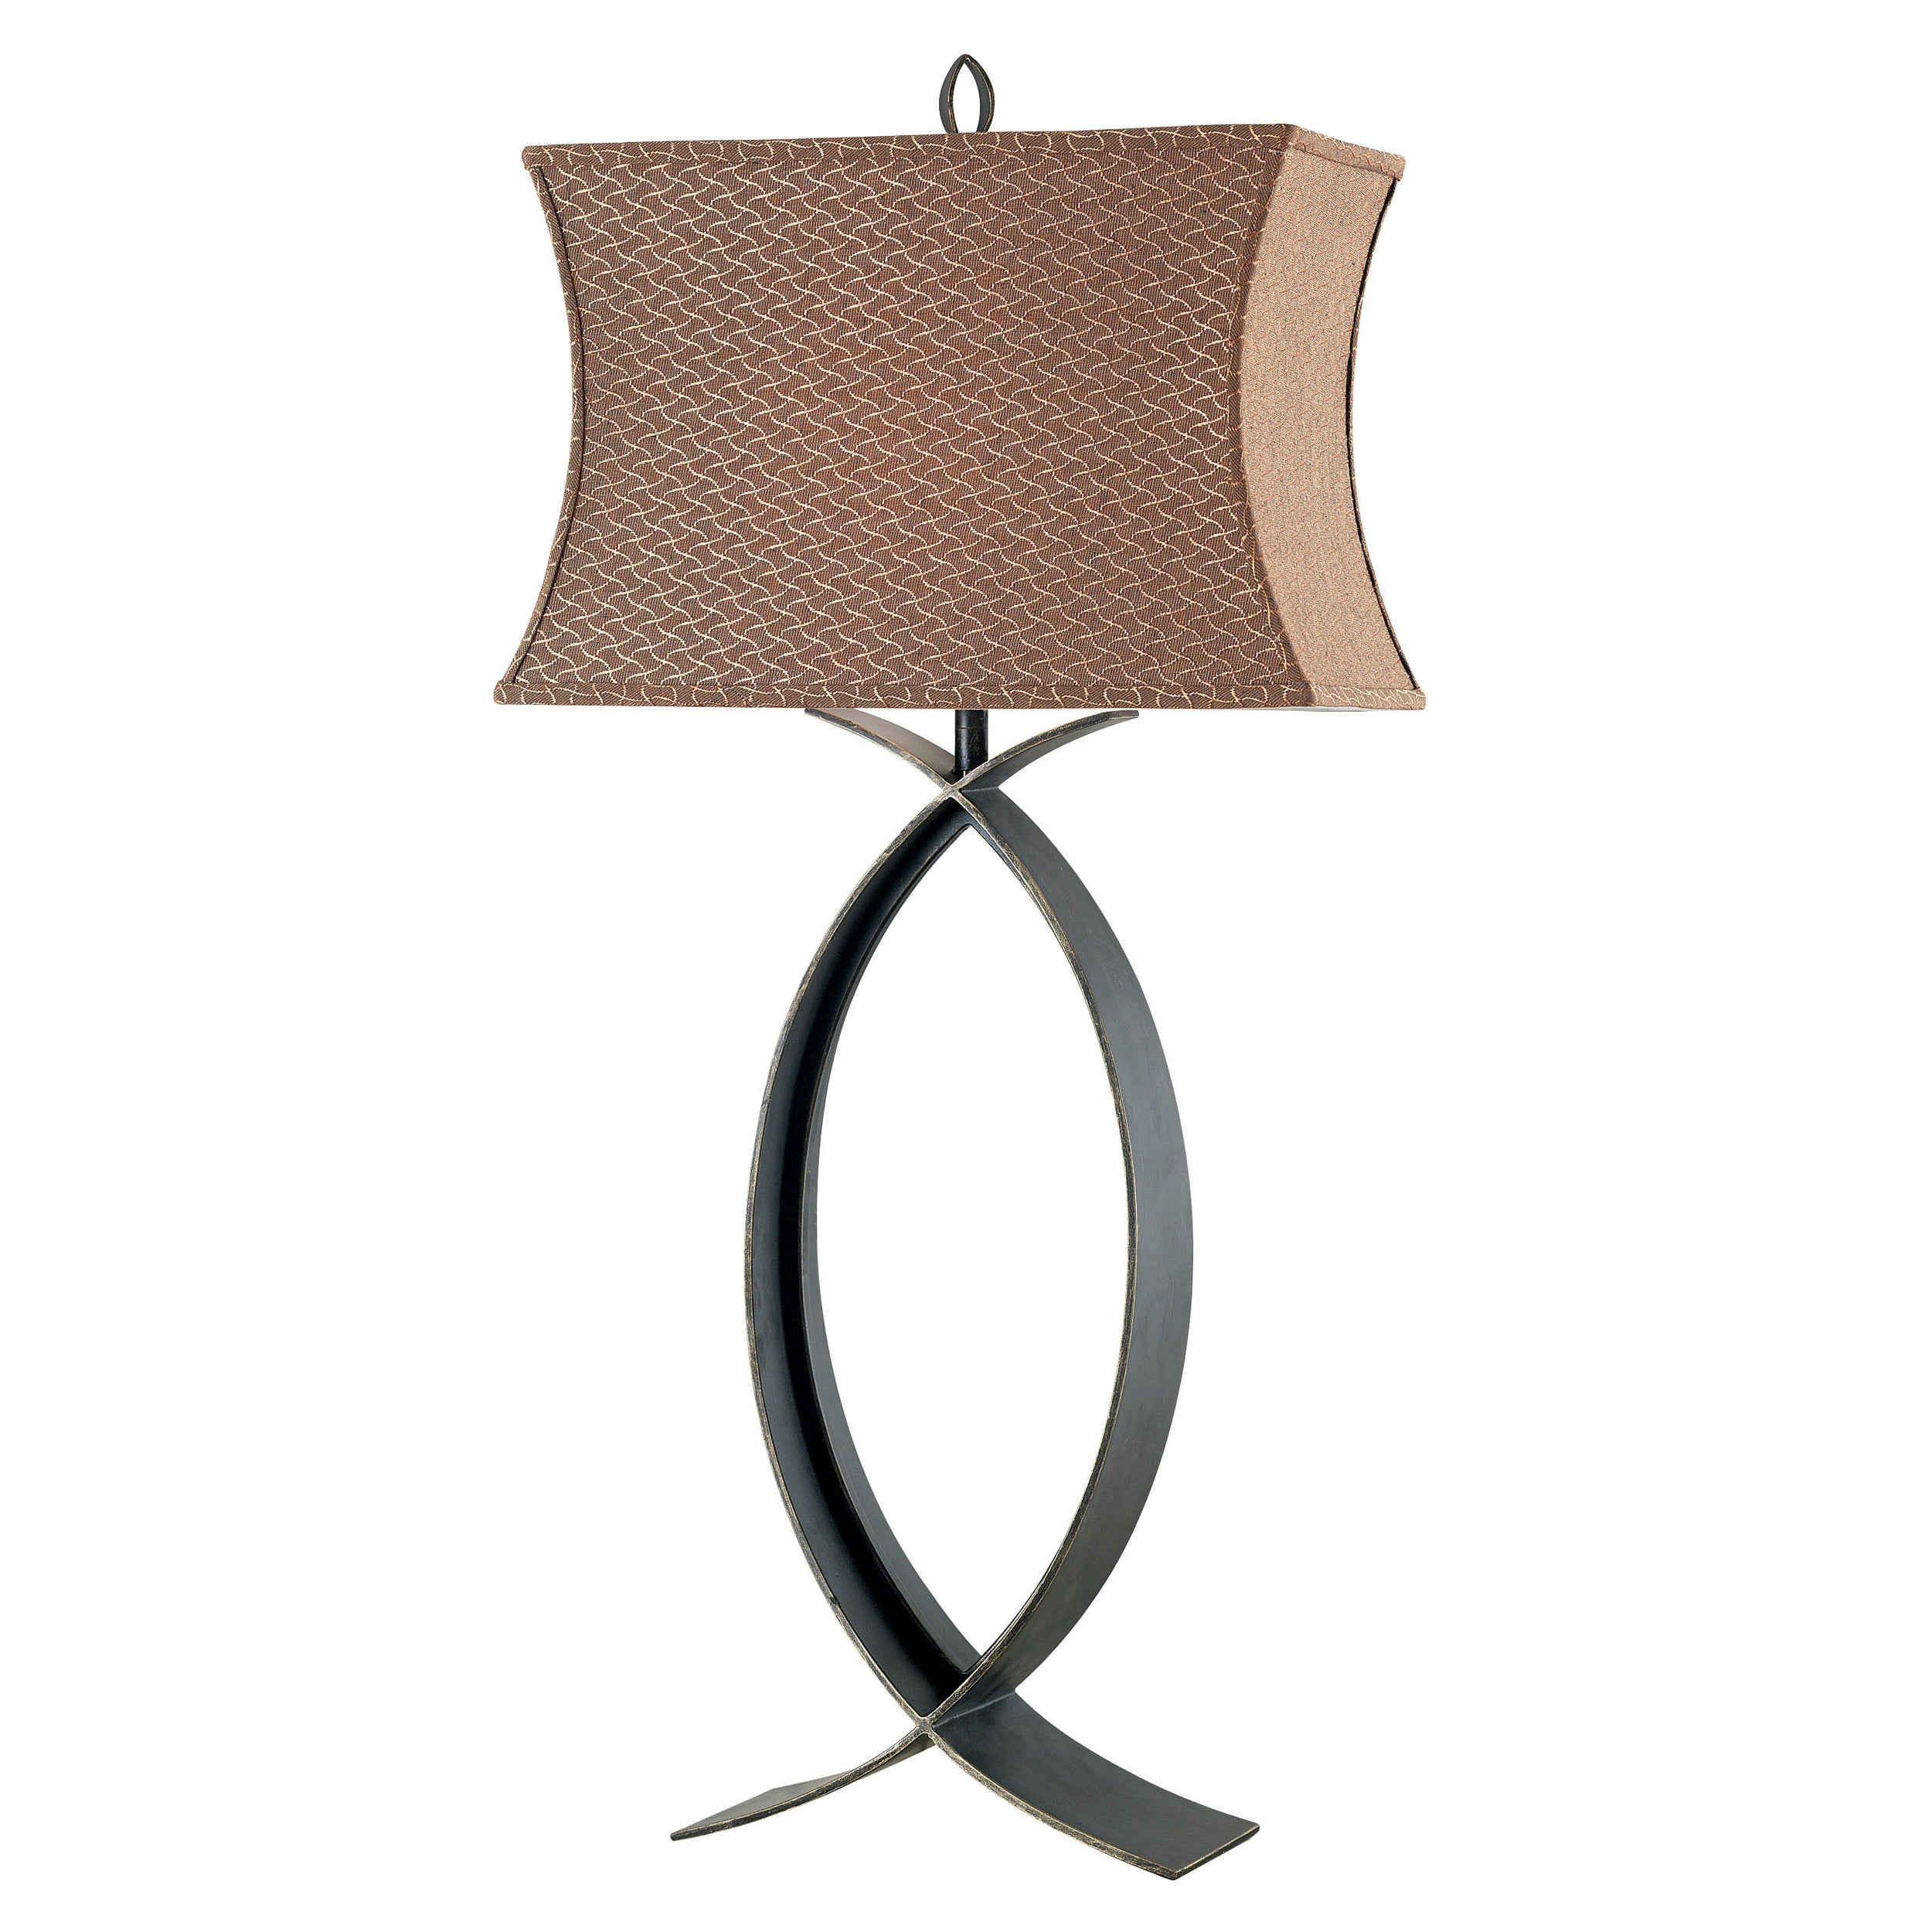 Design Craft Tower 32-inch High With Bronze Finish Table ...